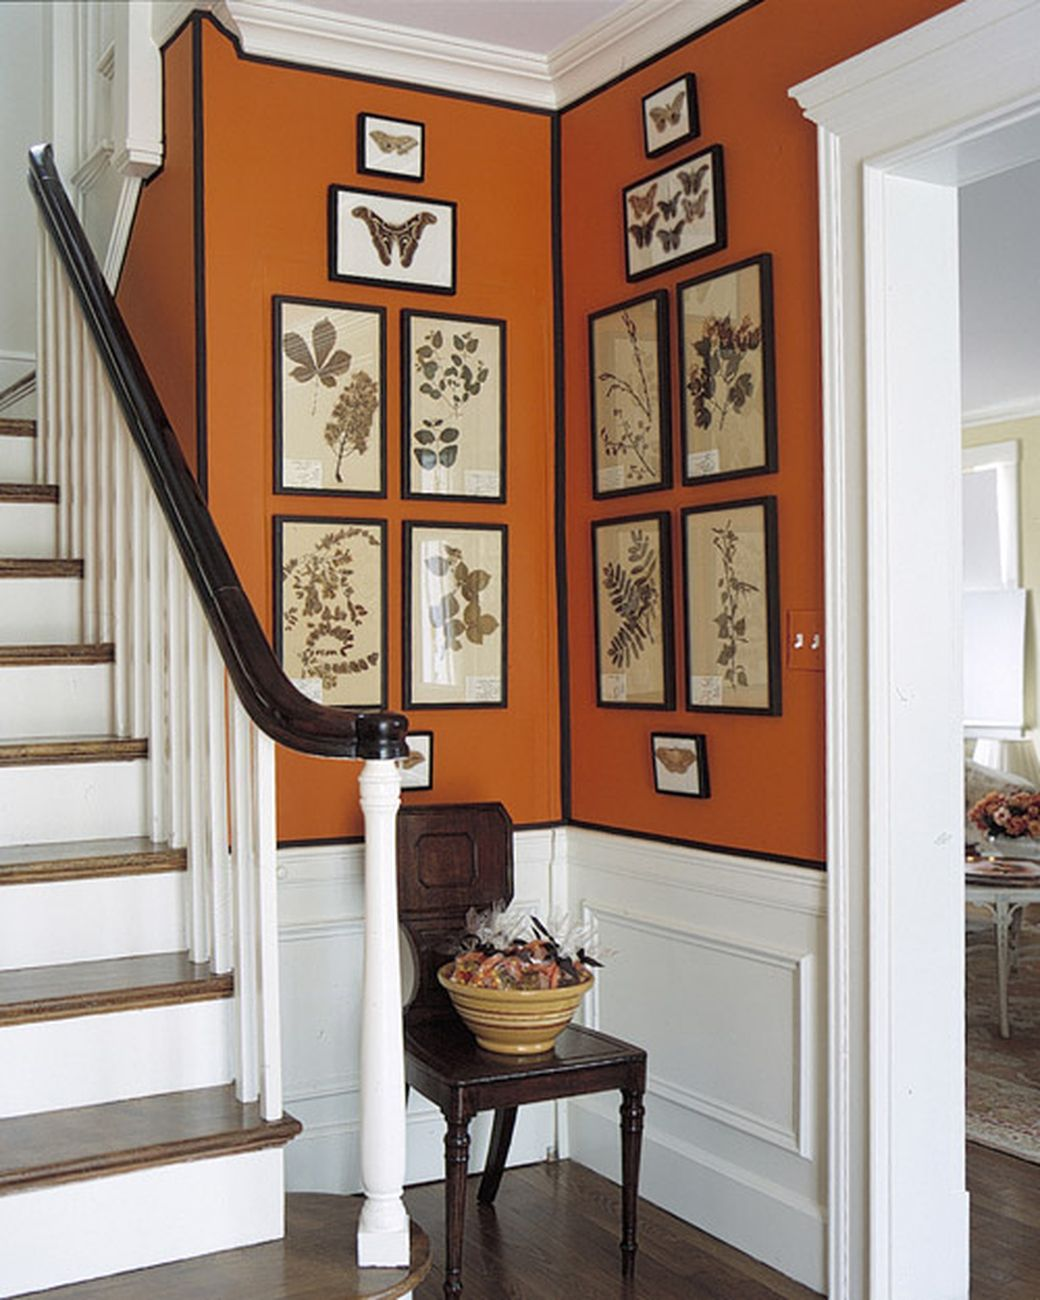 Decorating With Fall Colors Home Decor Orange Rooms Decor